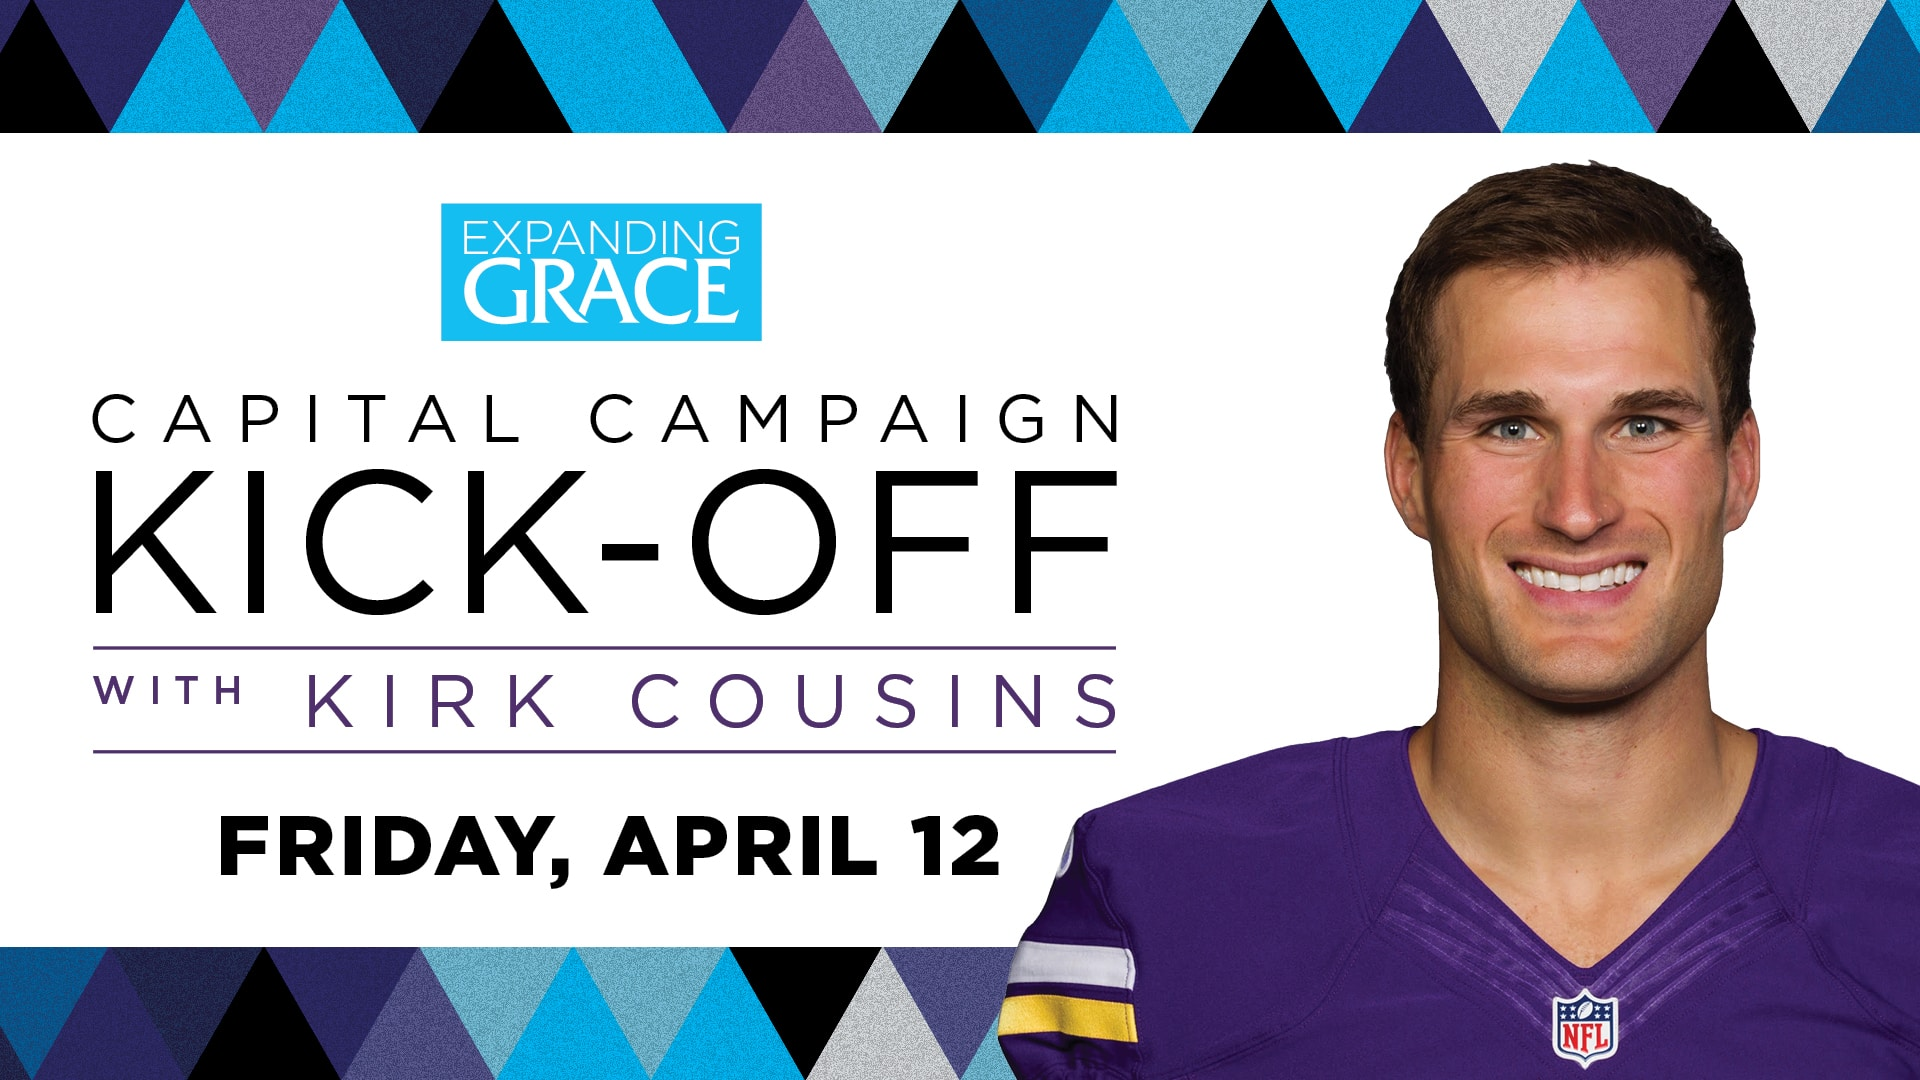 EGKO, Kirk Cousins, April 12